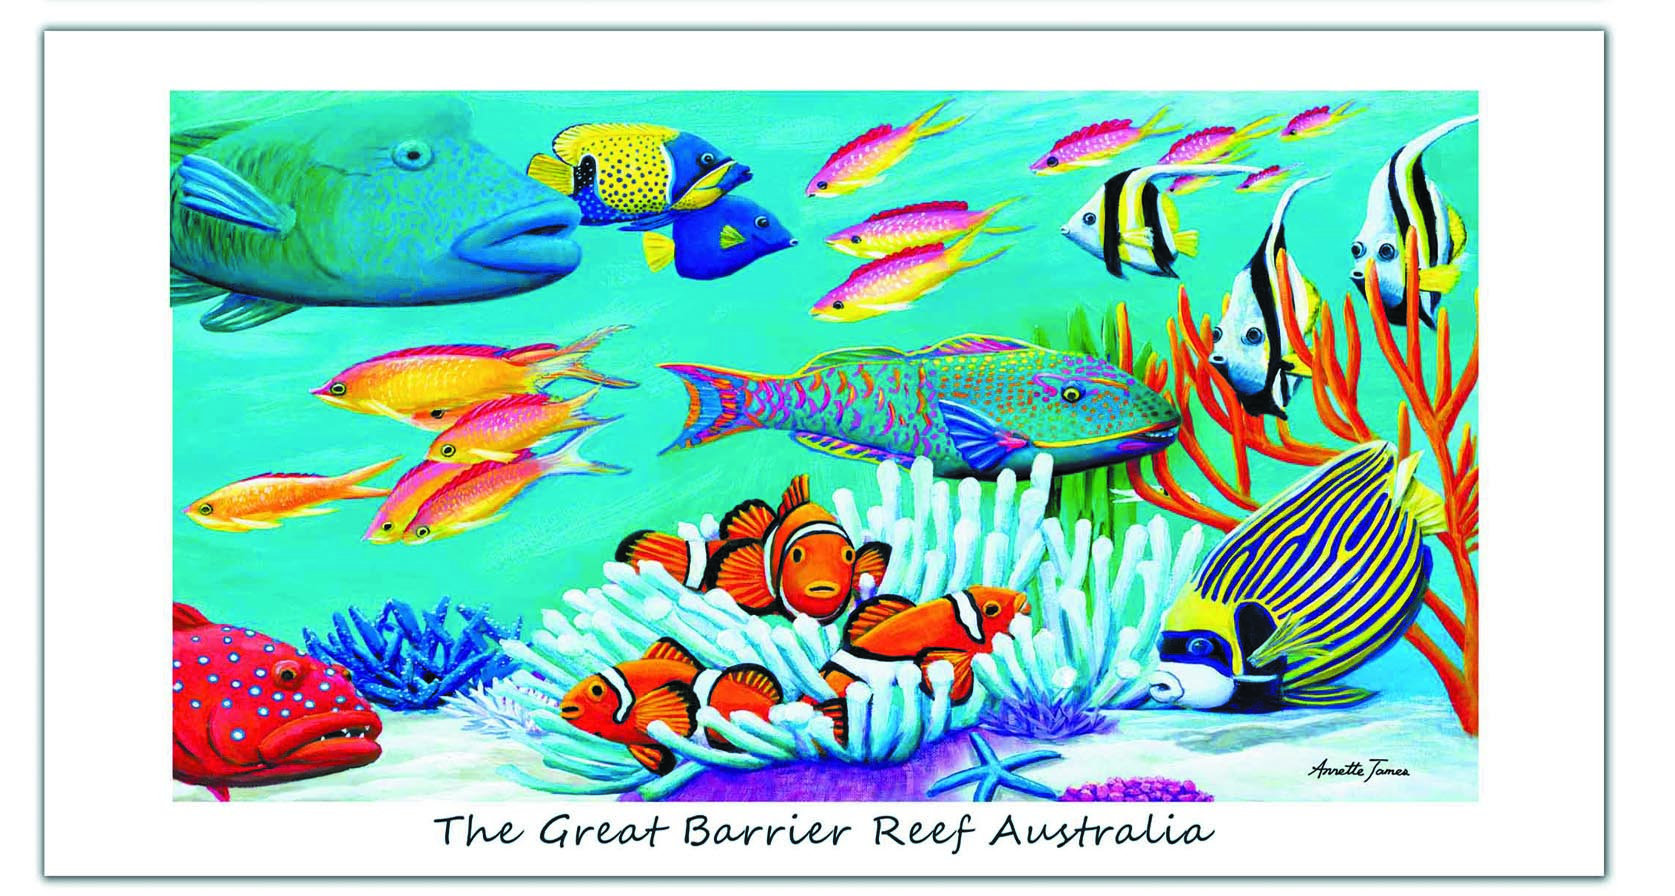 The Great Barrier Reef Australia beach towel!-Beach towel-Oz About Oz